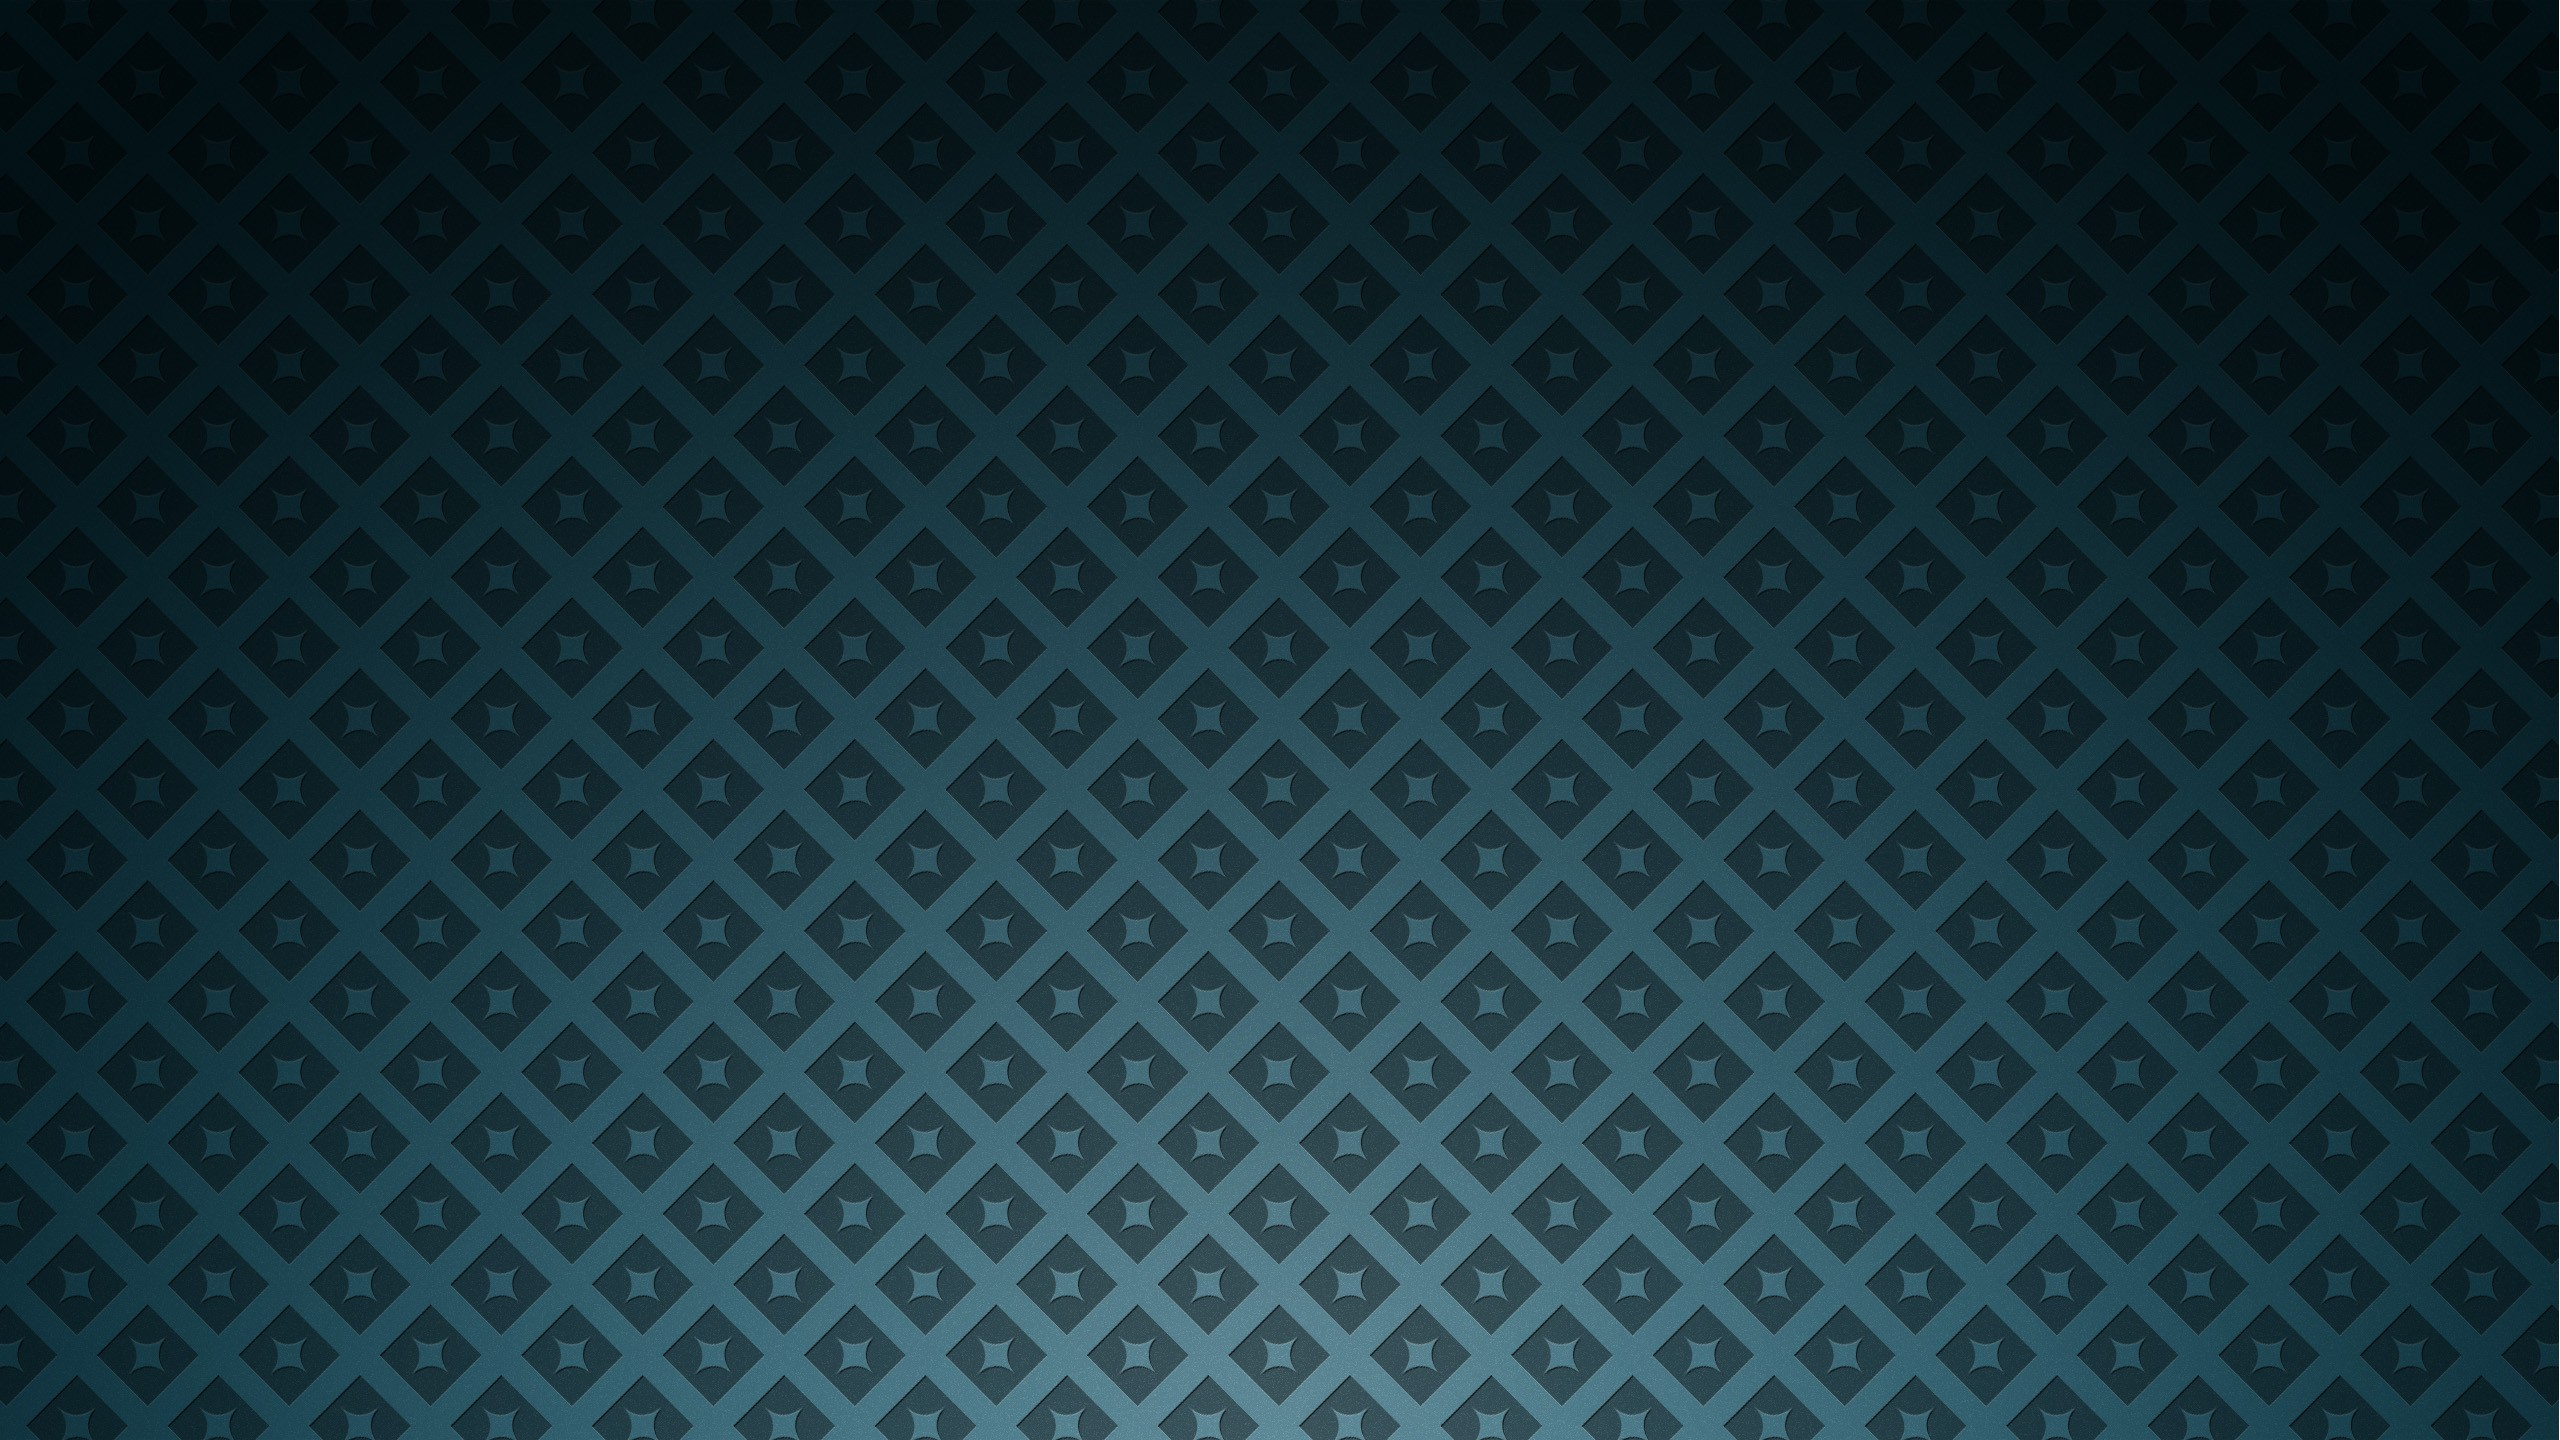 blue minimalistic patterns Diamonds HD Wallpaper